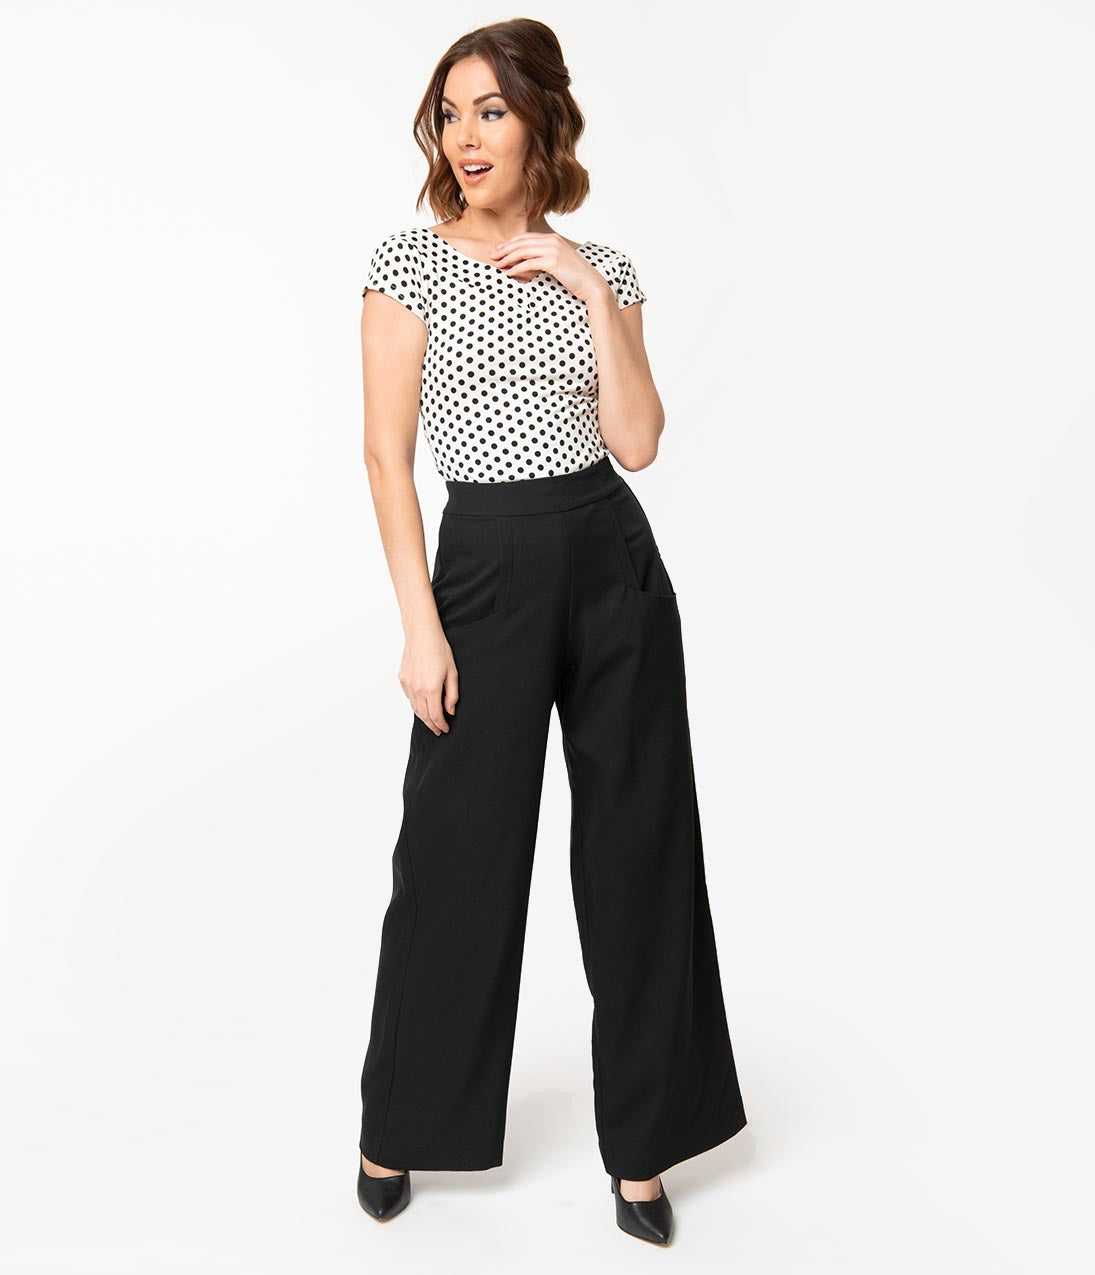 Vintage High Waisted Trousers, Sailor Pants, Jeans Unique Vintage 1940S Black High Waist Wide Leg Ginger Trousers $62.00 AT vintagedancer.com